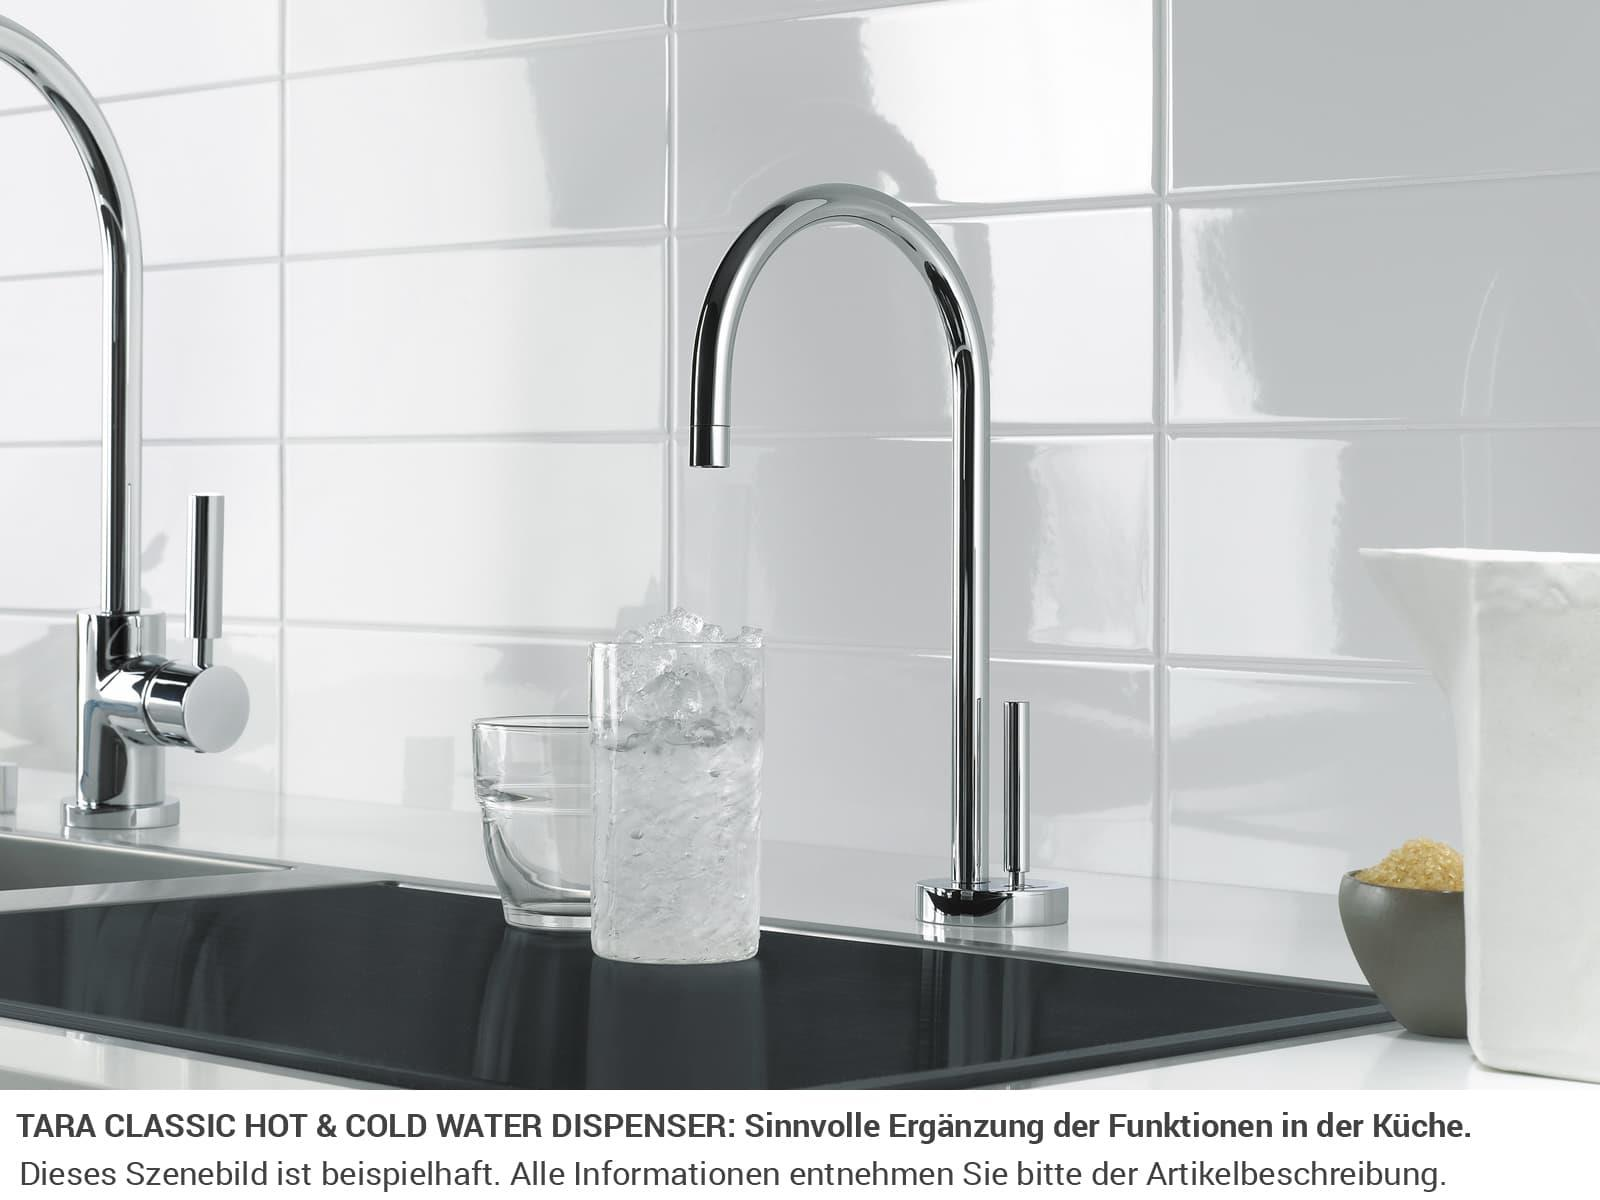 Dornbracht Tara Classic Hot & Cold Water Dispenser Chrom 17 861 888-00 Hochdruckarmatur